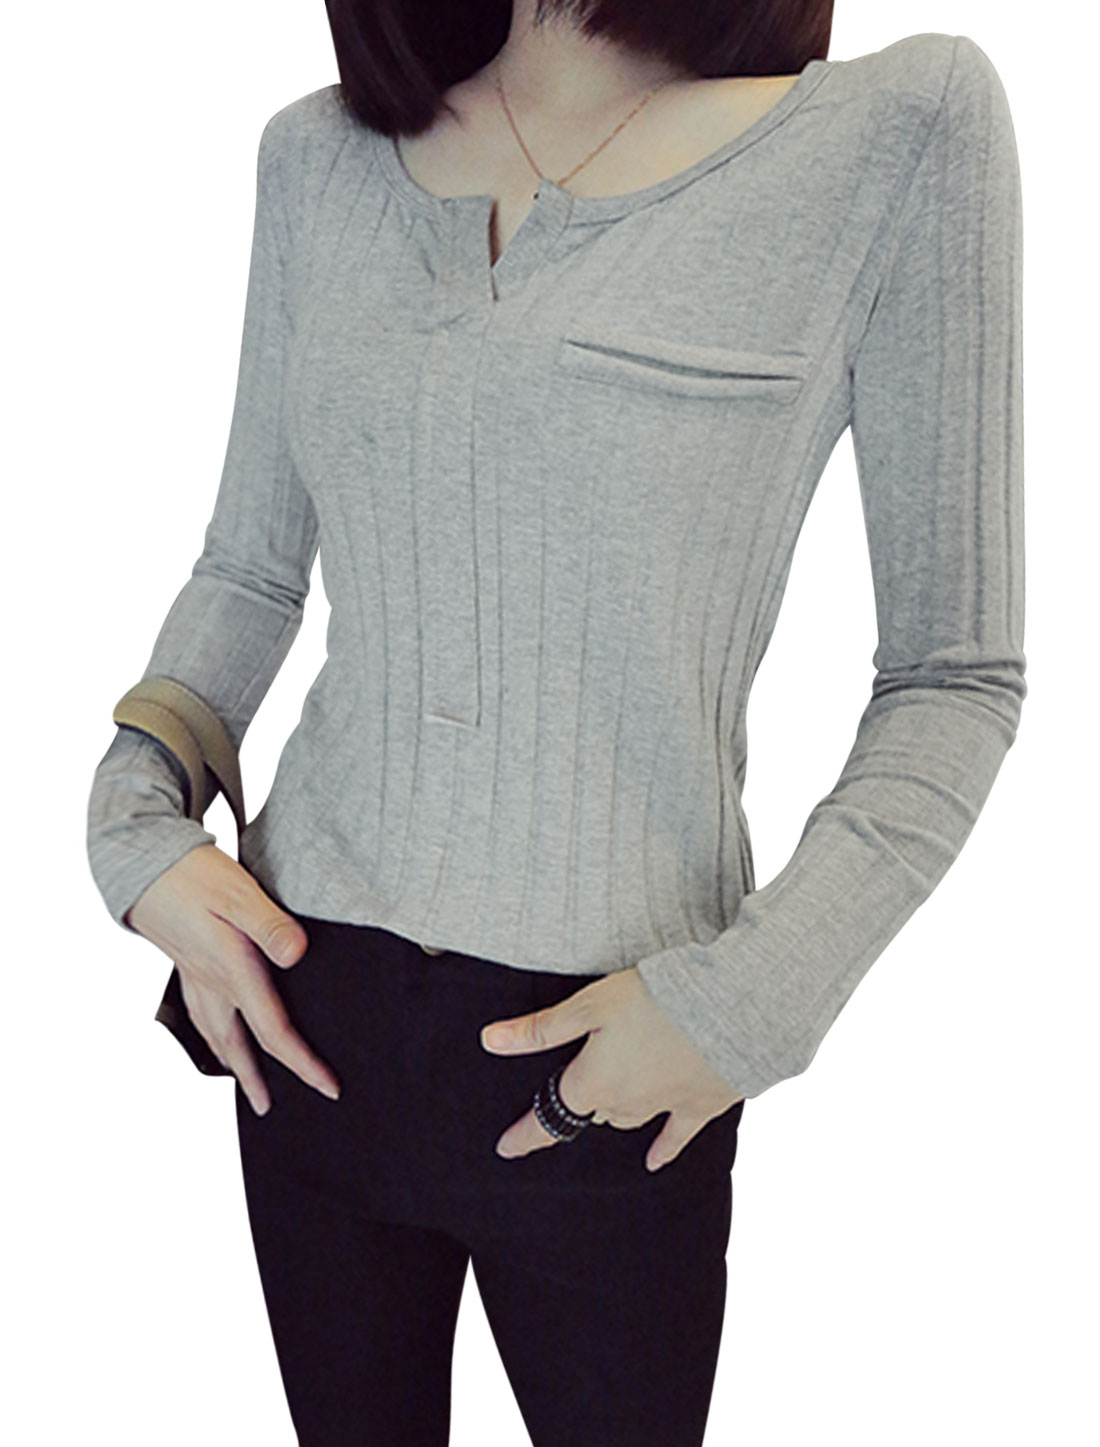 Ladies Long Sleeves Slipover Stripes Design Gray Shirt XS